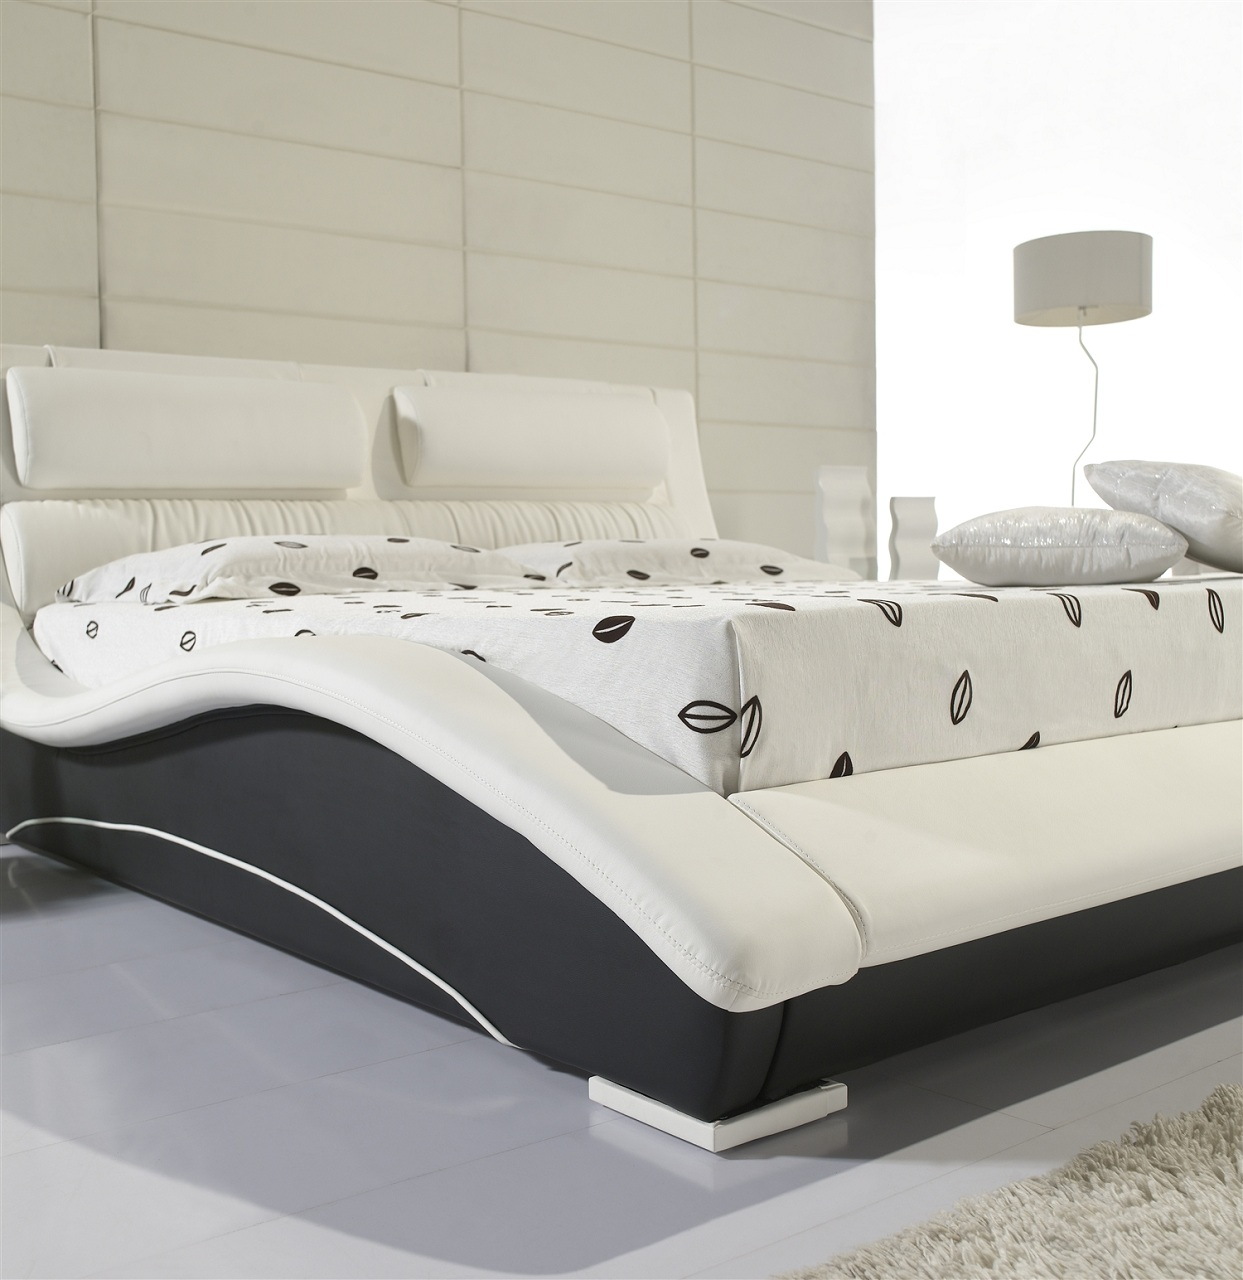 wasserbett komplett softside dual design polster bettgestell bettrahmen charisma ebay. Black Bedroom Furniture Sets. Home Design Ideas